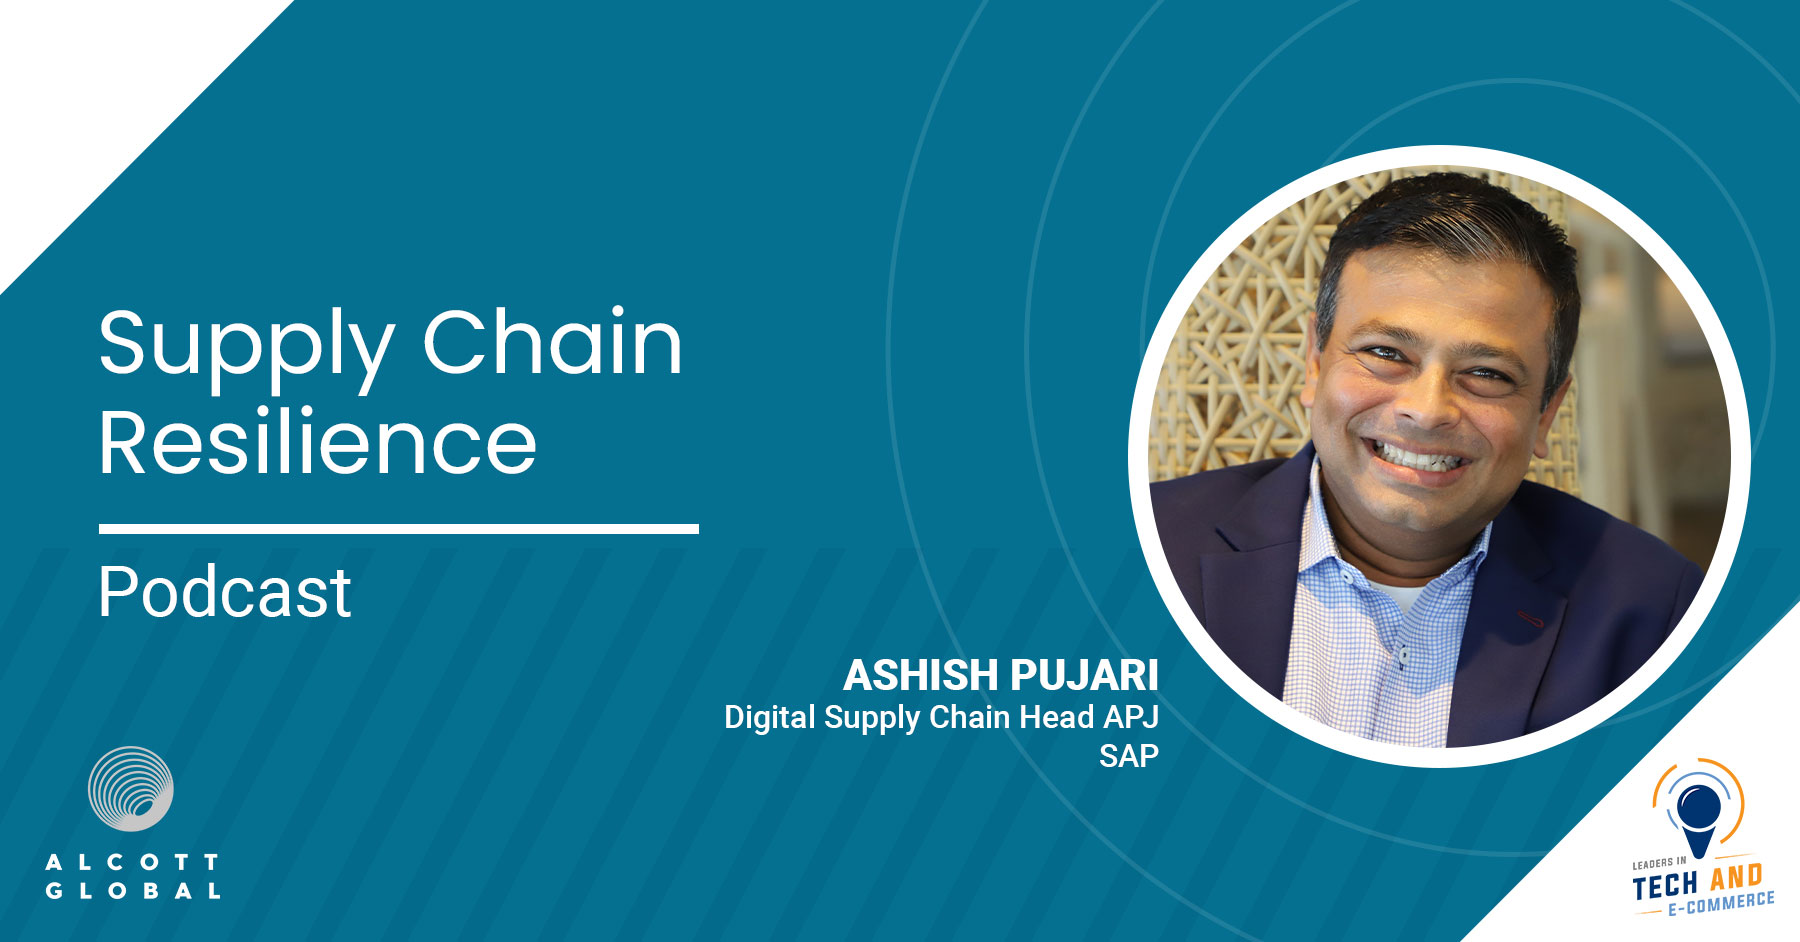 Supply Chain Resilience with Ashish Pujari Digital Supply Chain Head APJ at SAP Featured Image